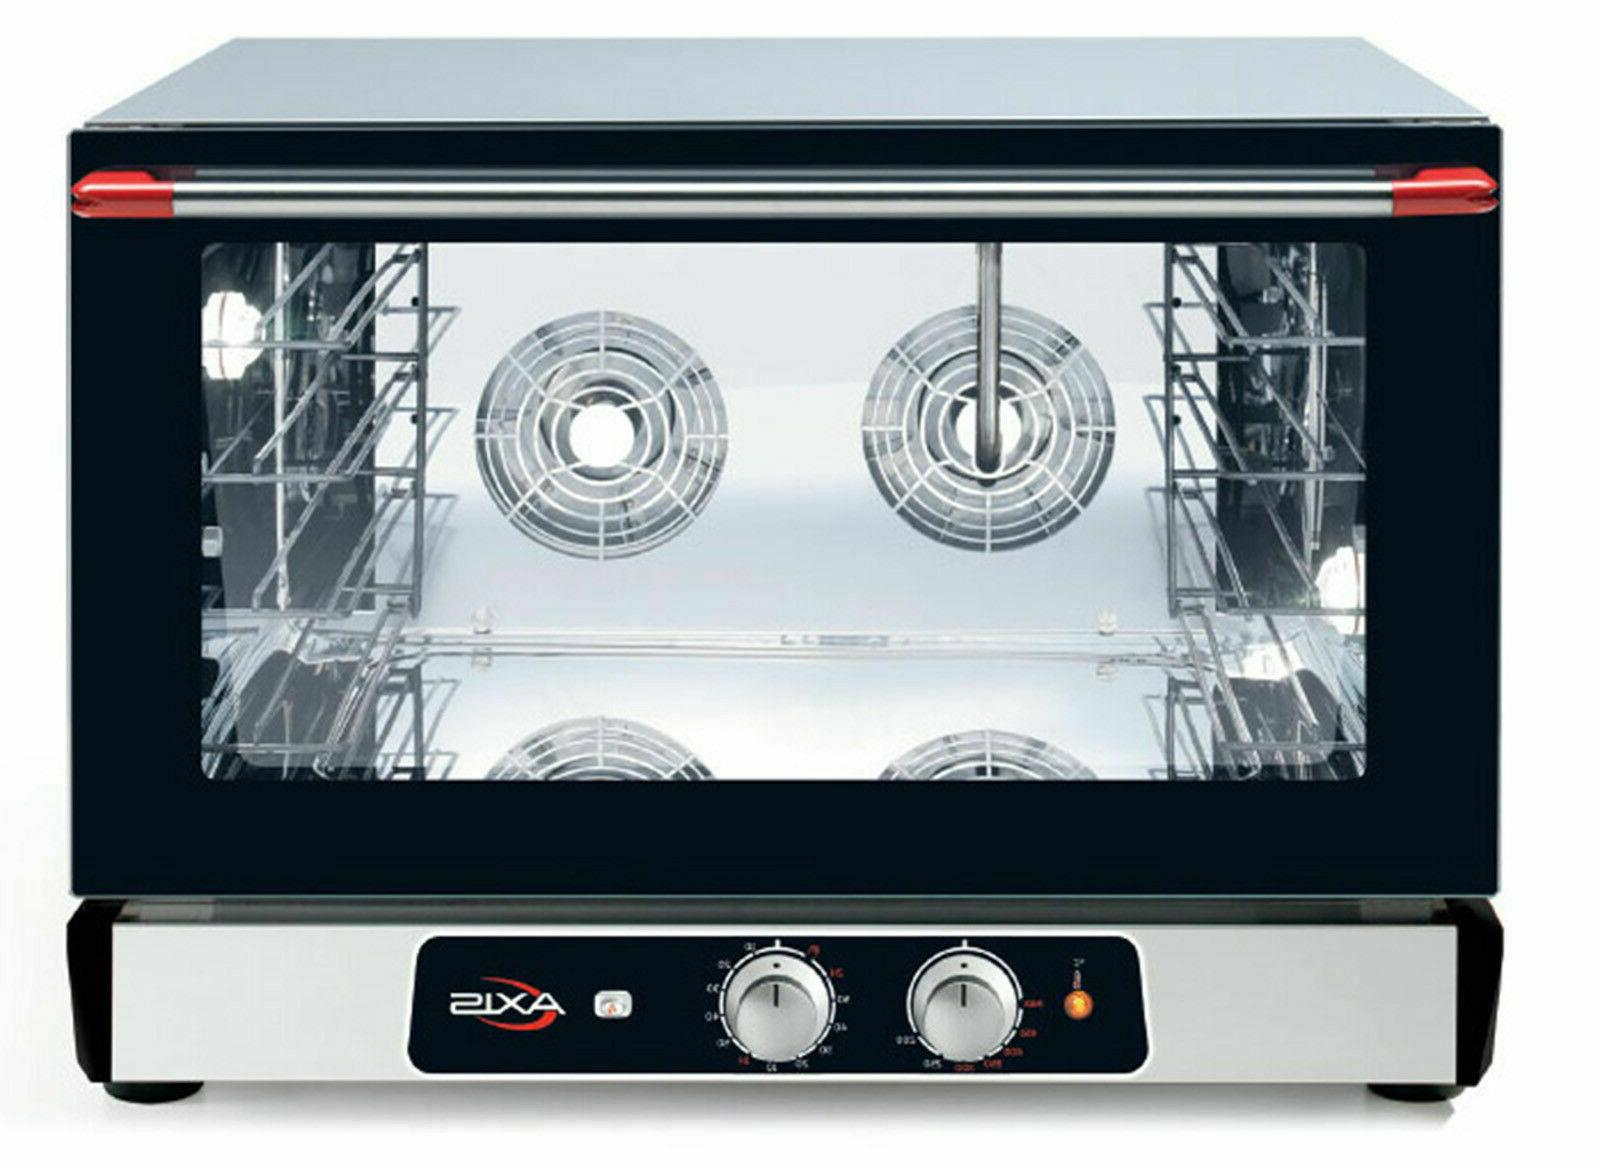 axis ax 824rh convection oven countertop full